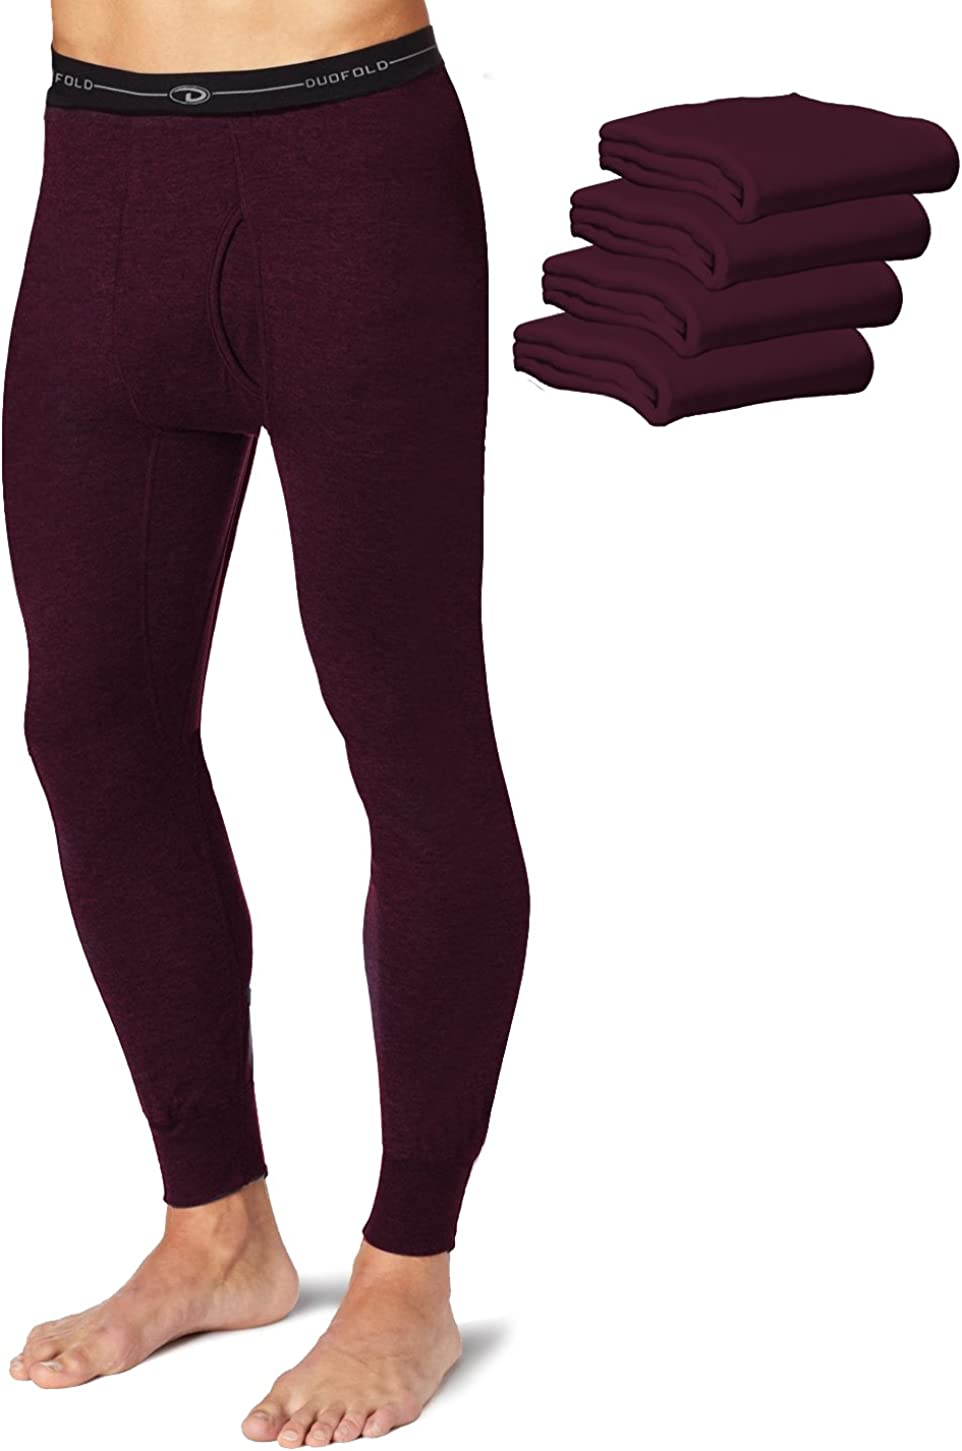 Duofold KMW2 Men's Mid Weight Wicking Thermal Pant Bordeaux Red (Pack of 5)